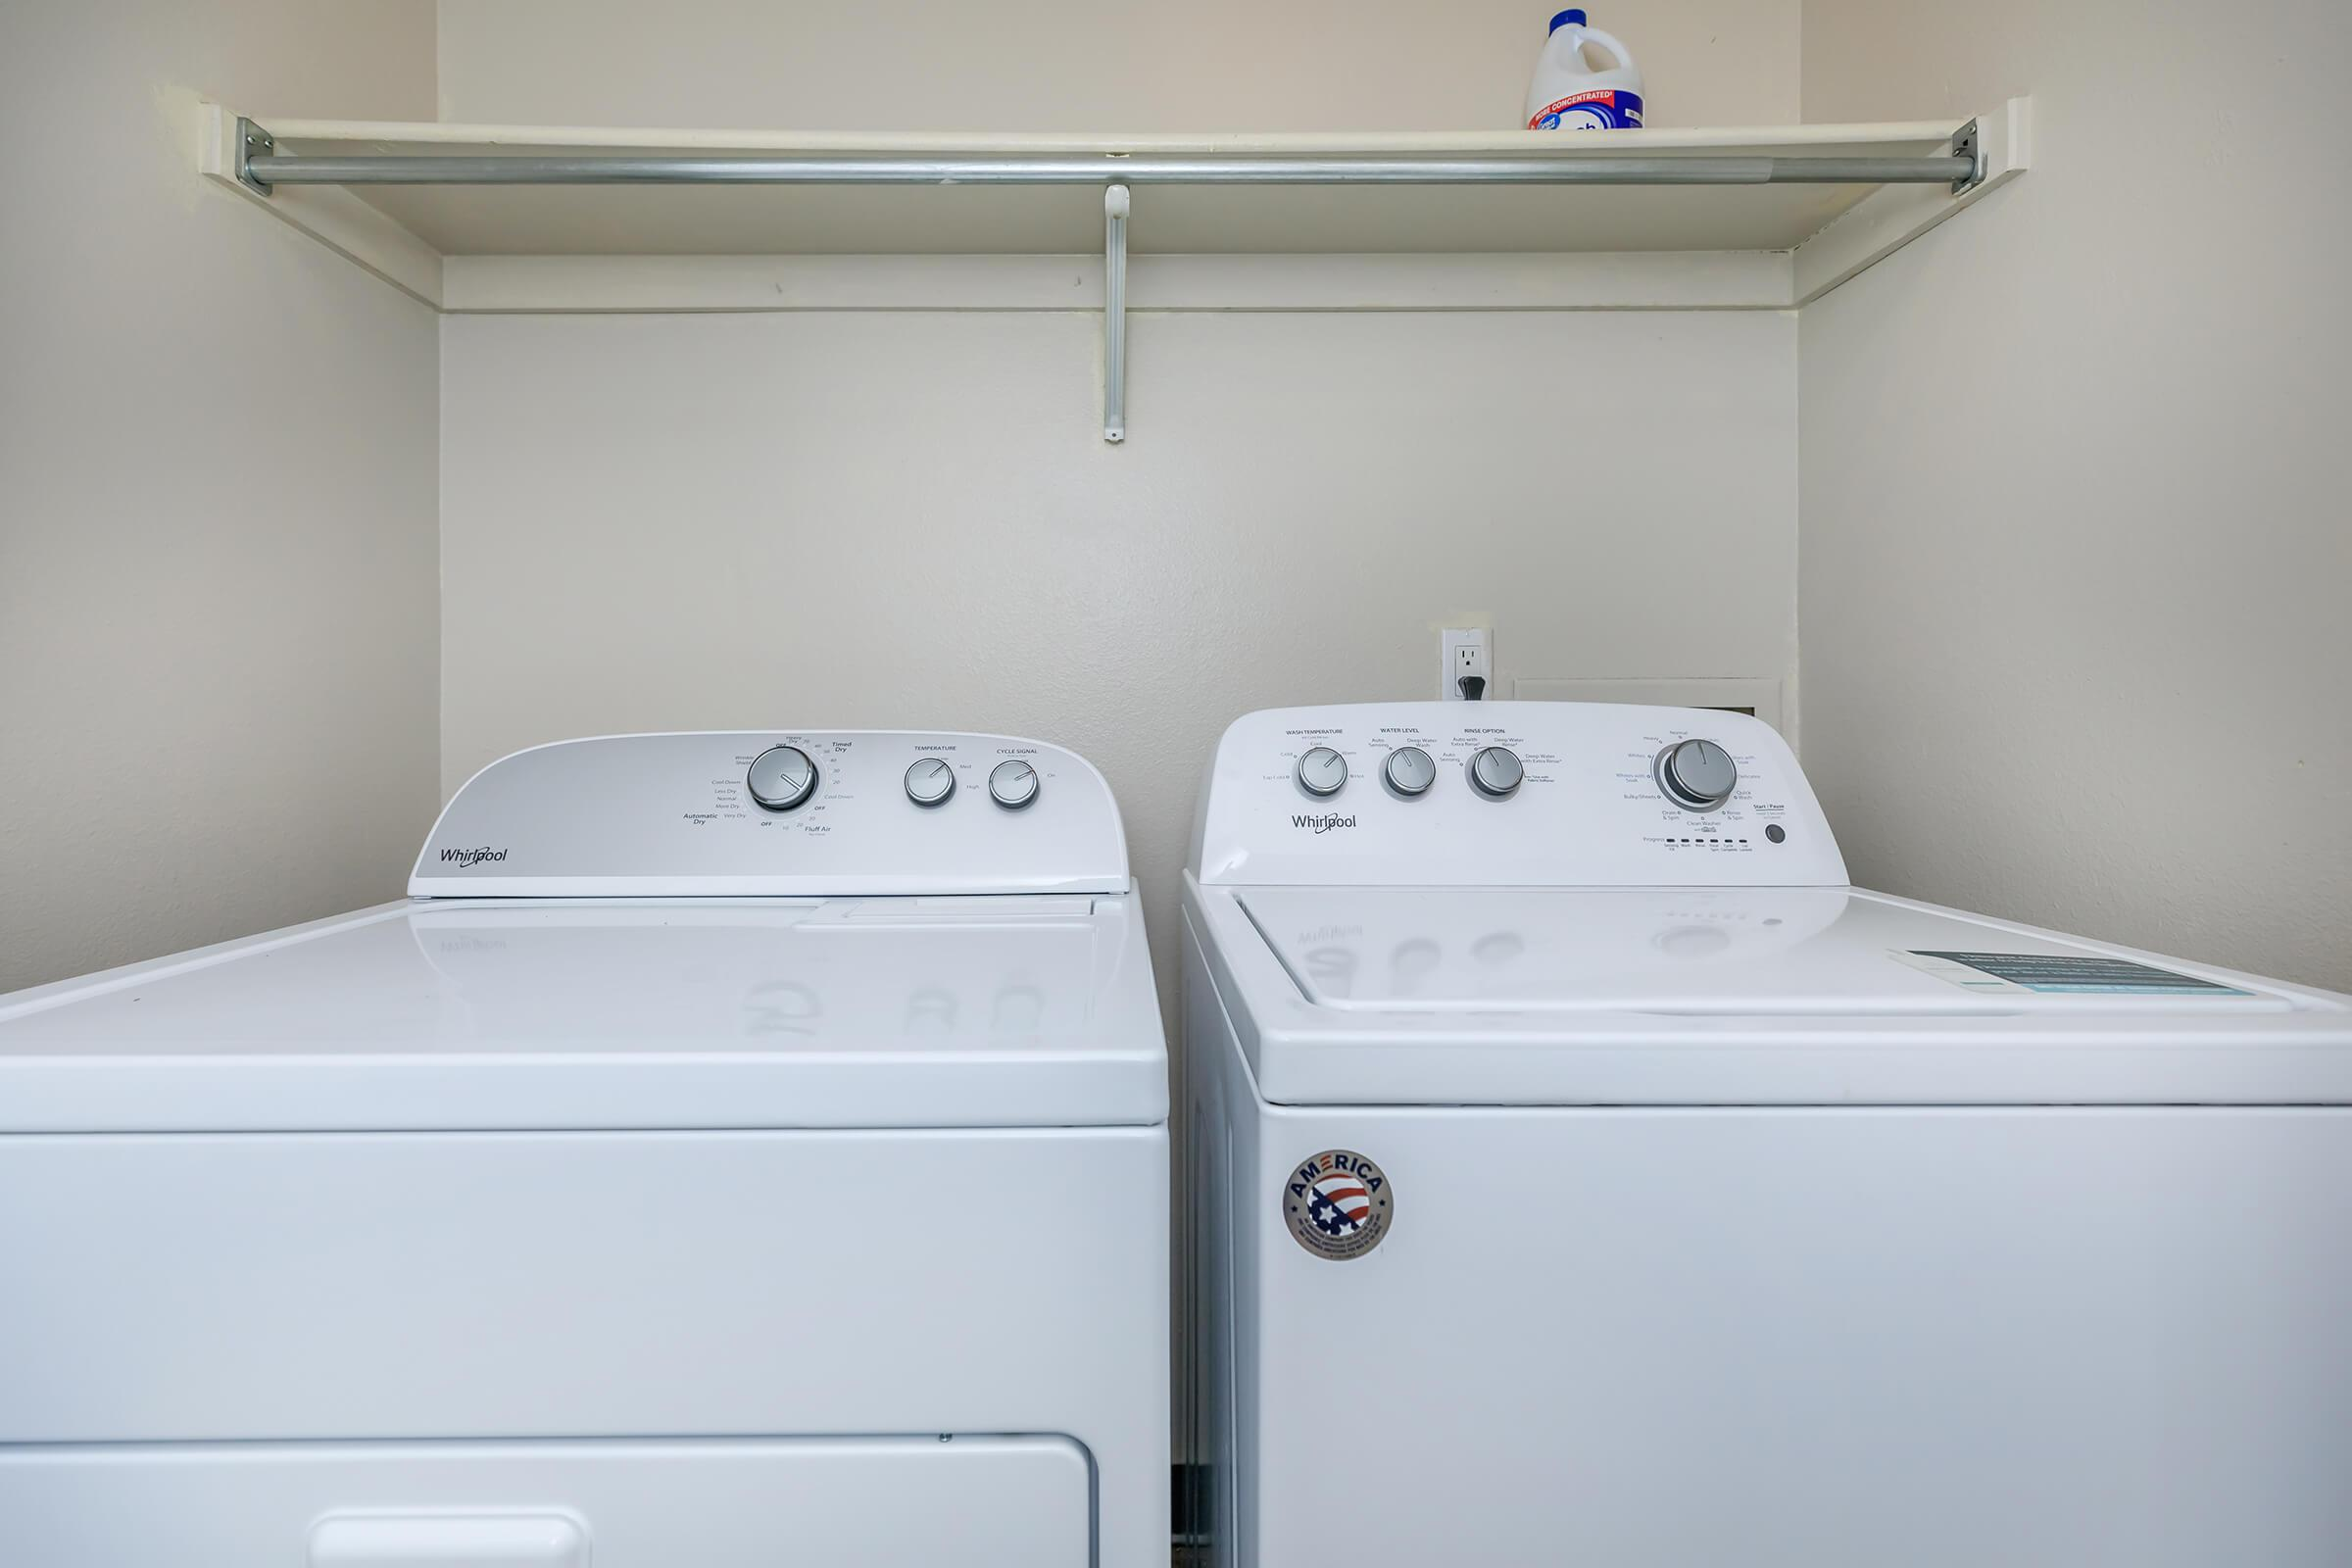 FULL-SIZE WASHER AND DRYER IN THE HOME